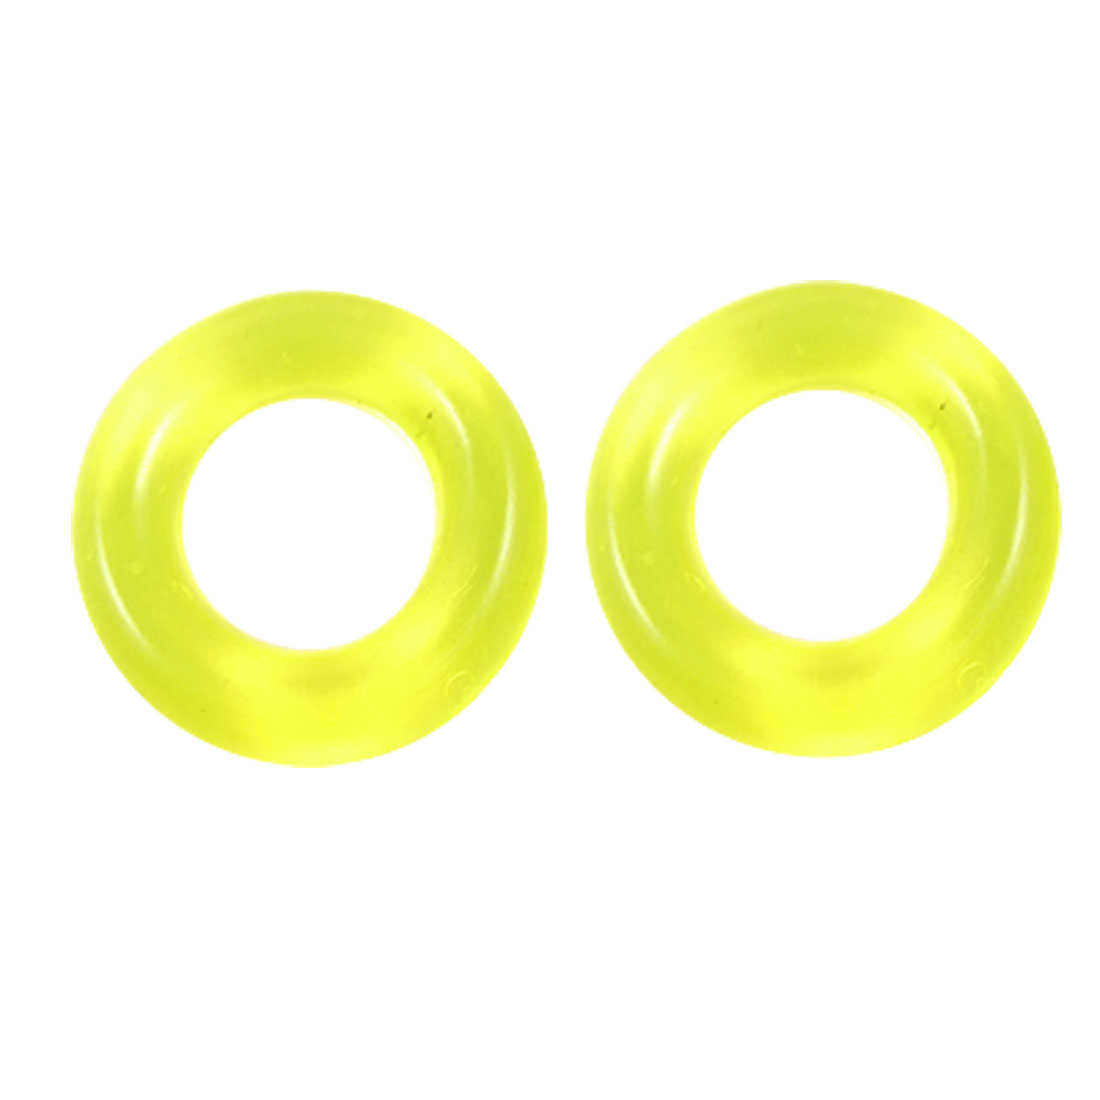 Fishing Rod Pole Yellowgreen Rubber Nonslip Circle Rings x 5